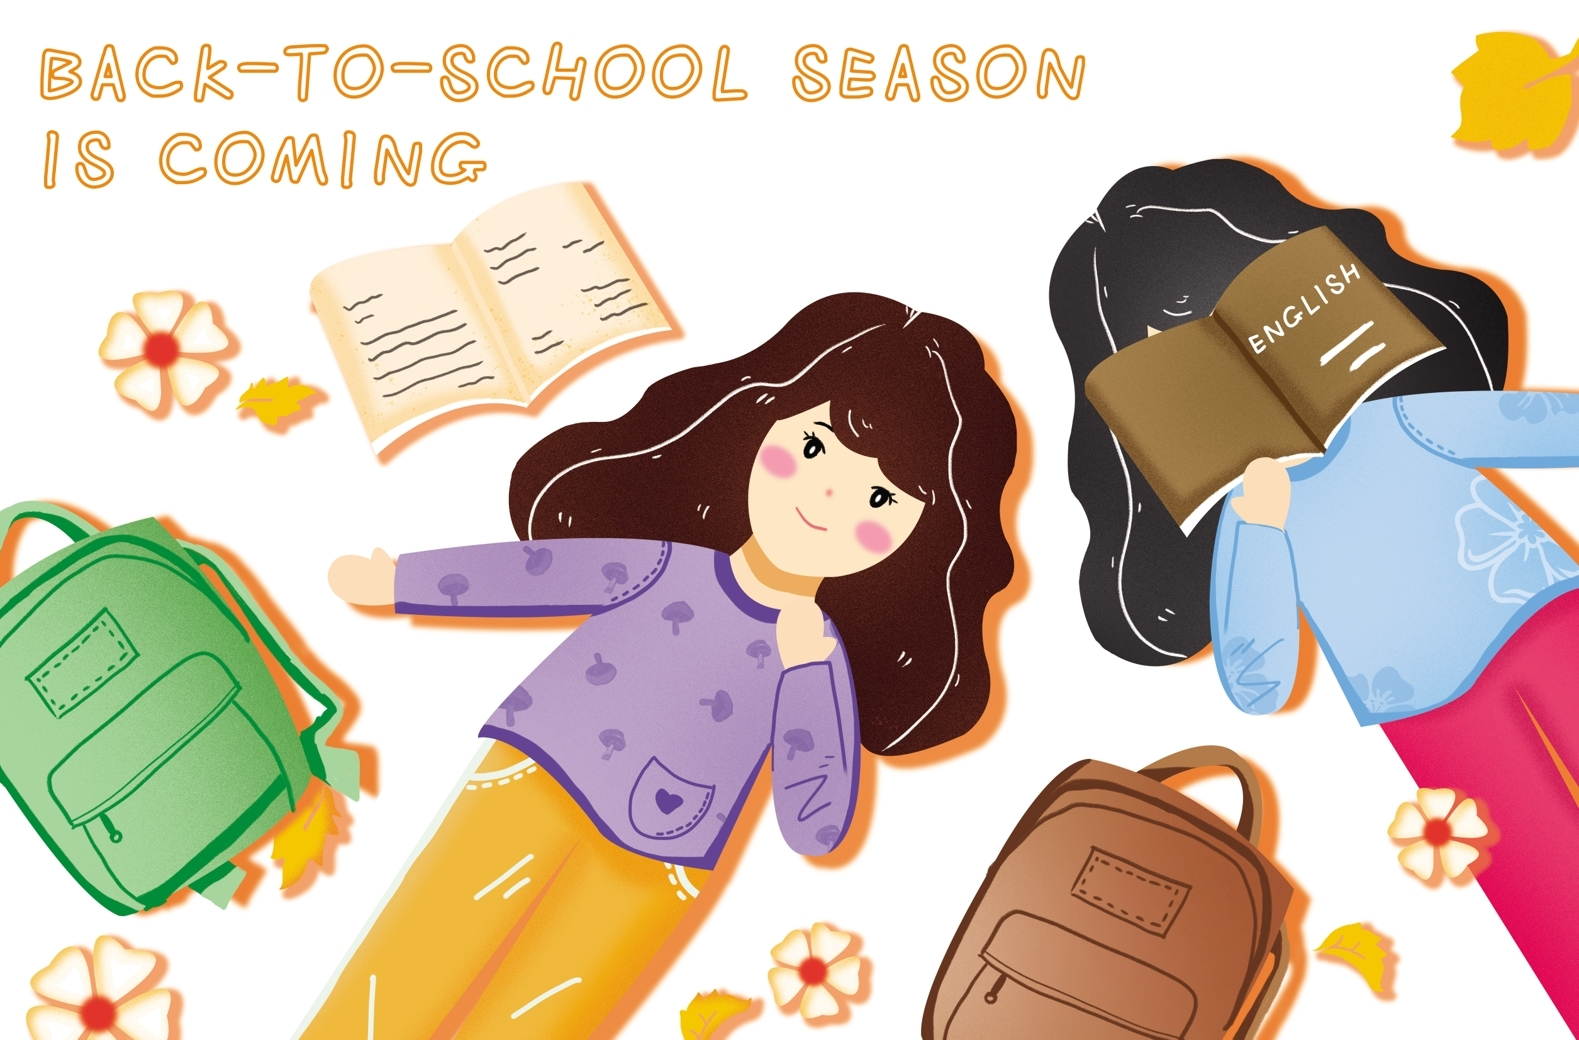 Are you Ready? Coming Soon: Back to School